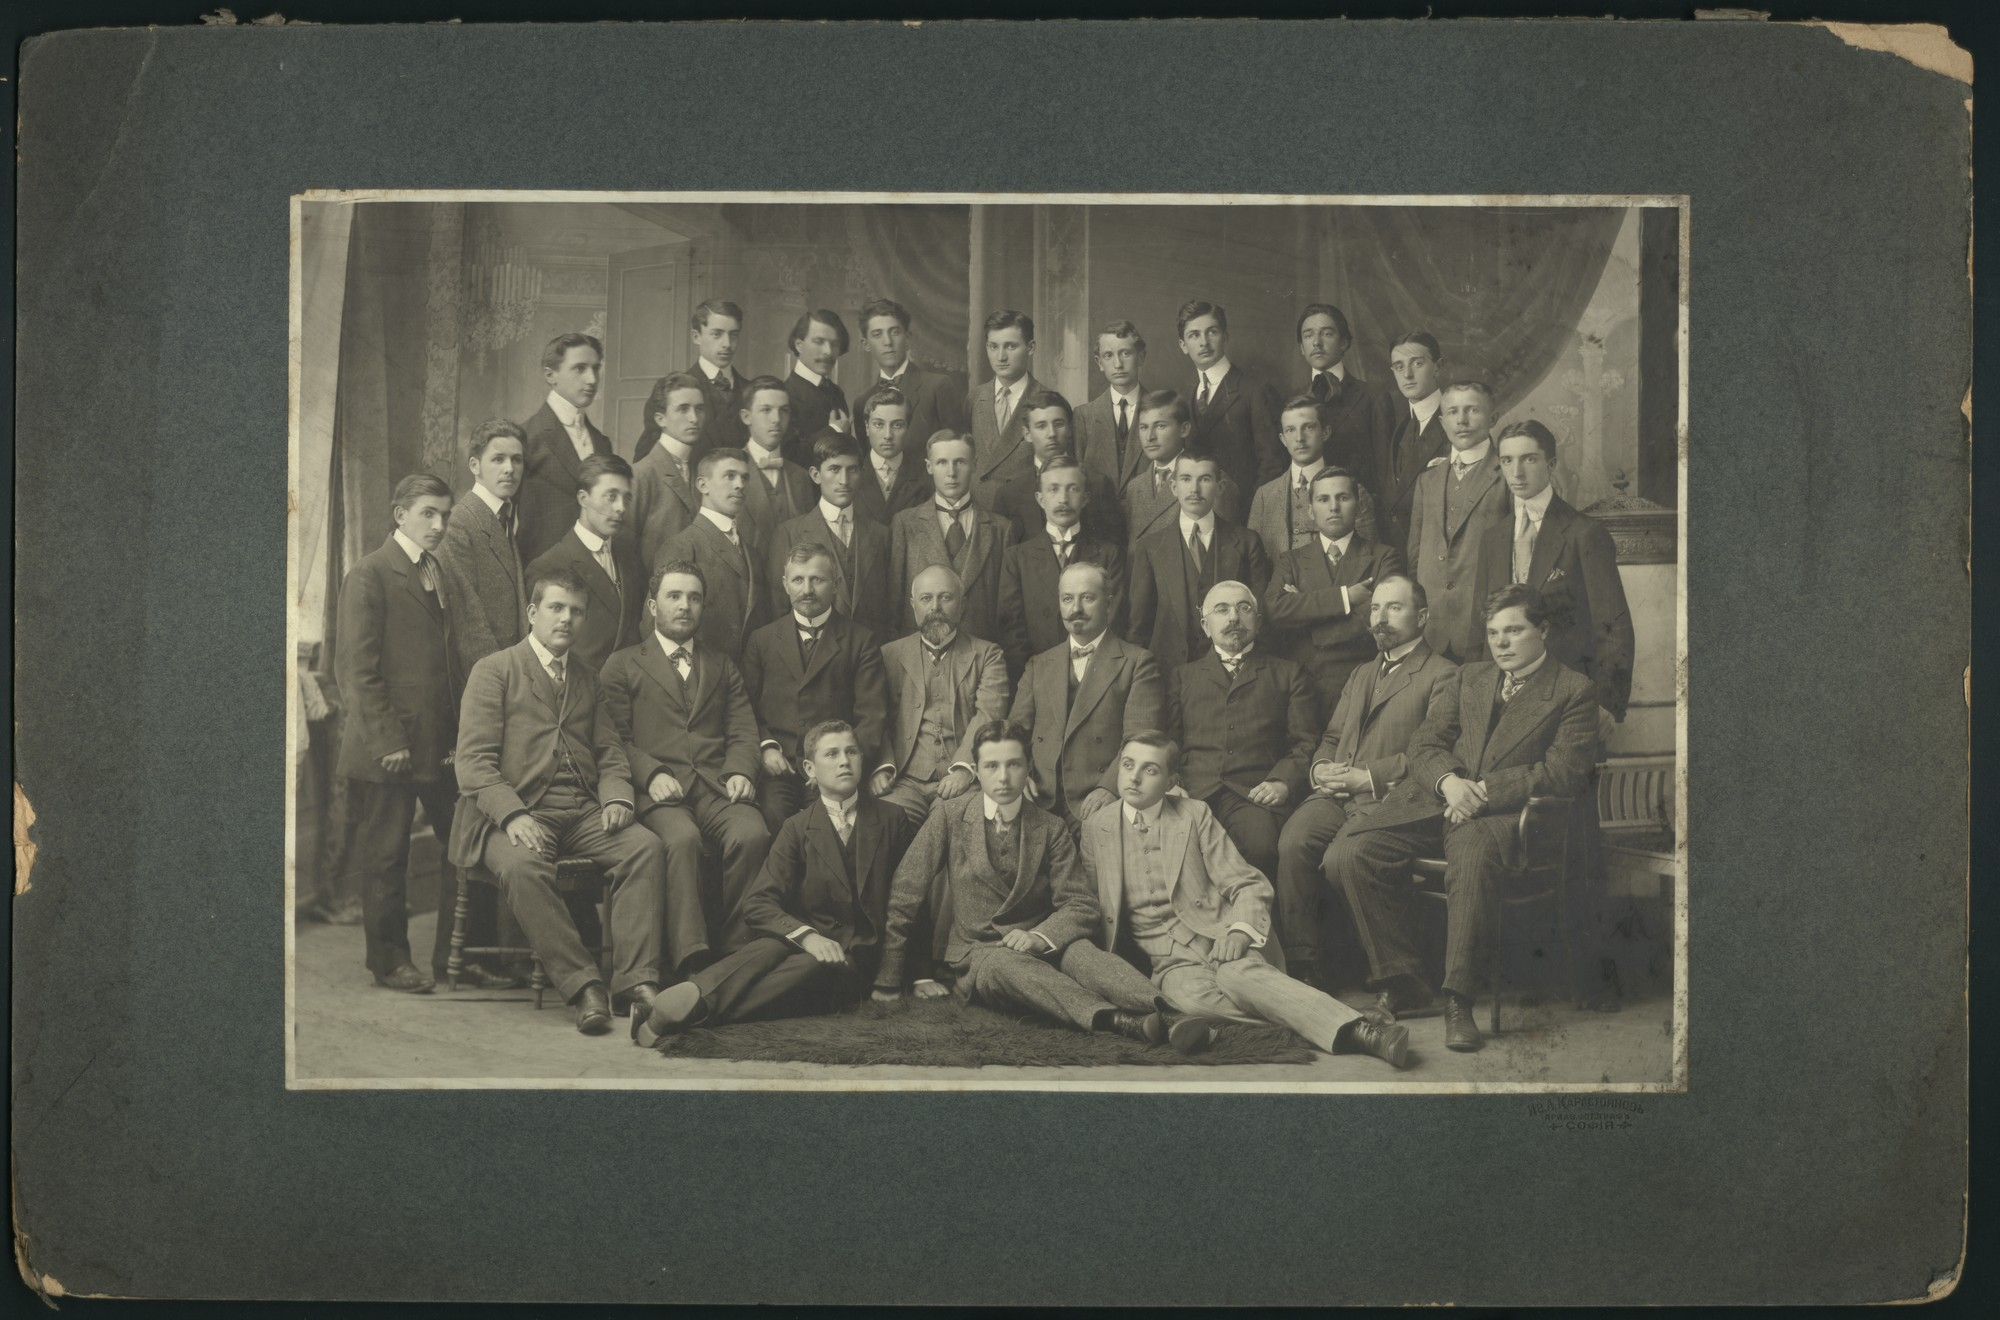 Teachers and students of the First Men's High School, © St. Cyril and St. Methodius National Library